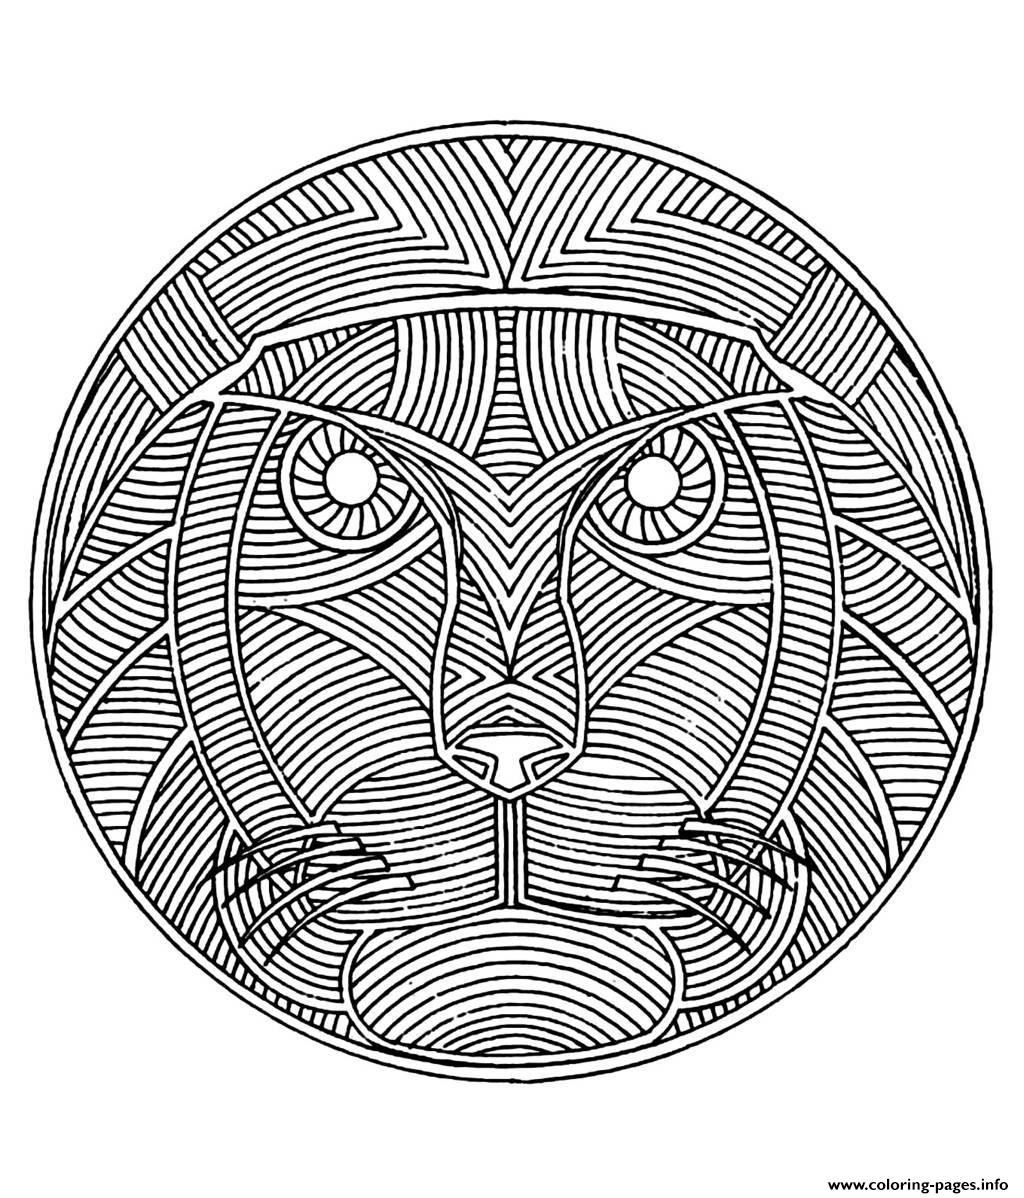 Difficult Coloring Page Mandala - Coloring Home